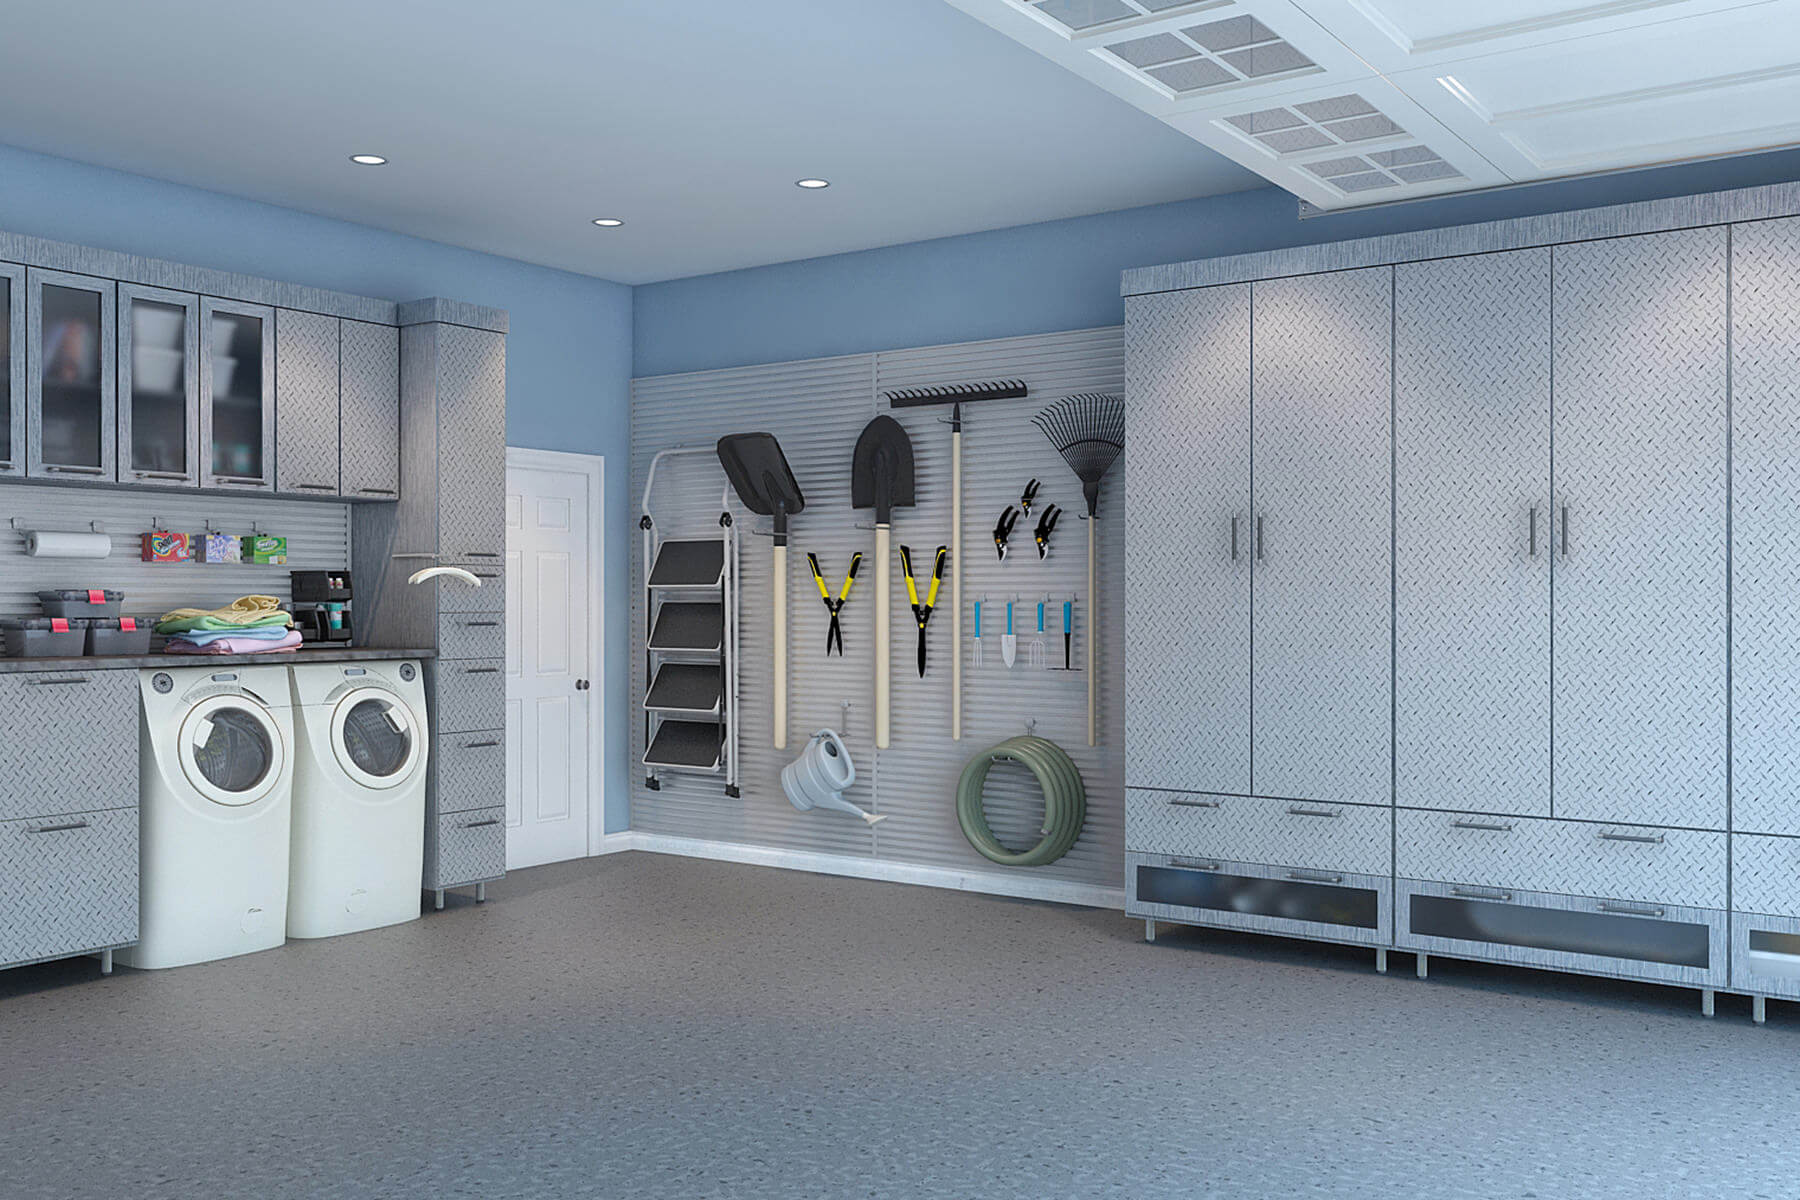 The garage's melamine cabinets and uppers with Lucite inserts easily steal your attention. Everything fits perfectly in the room even with the laundry and storage area finding their rightful places in the shared space of the garage.